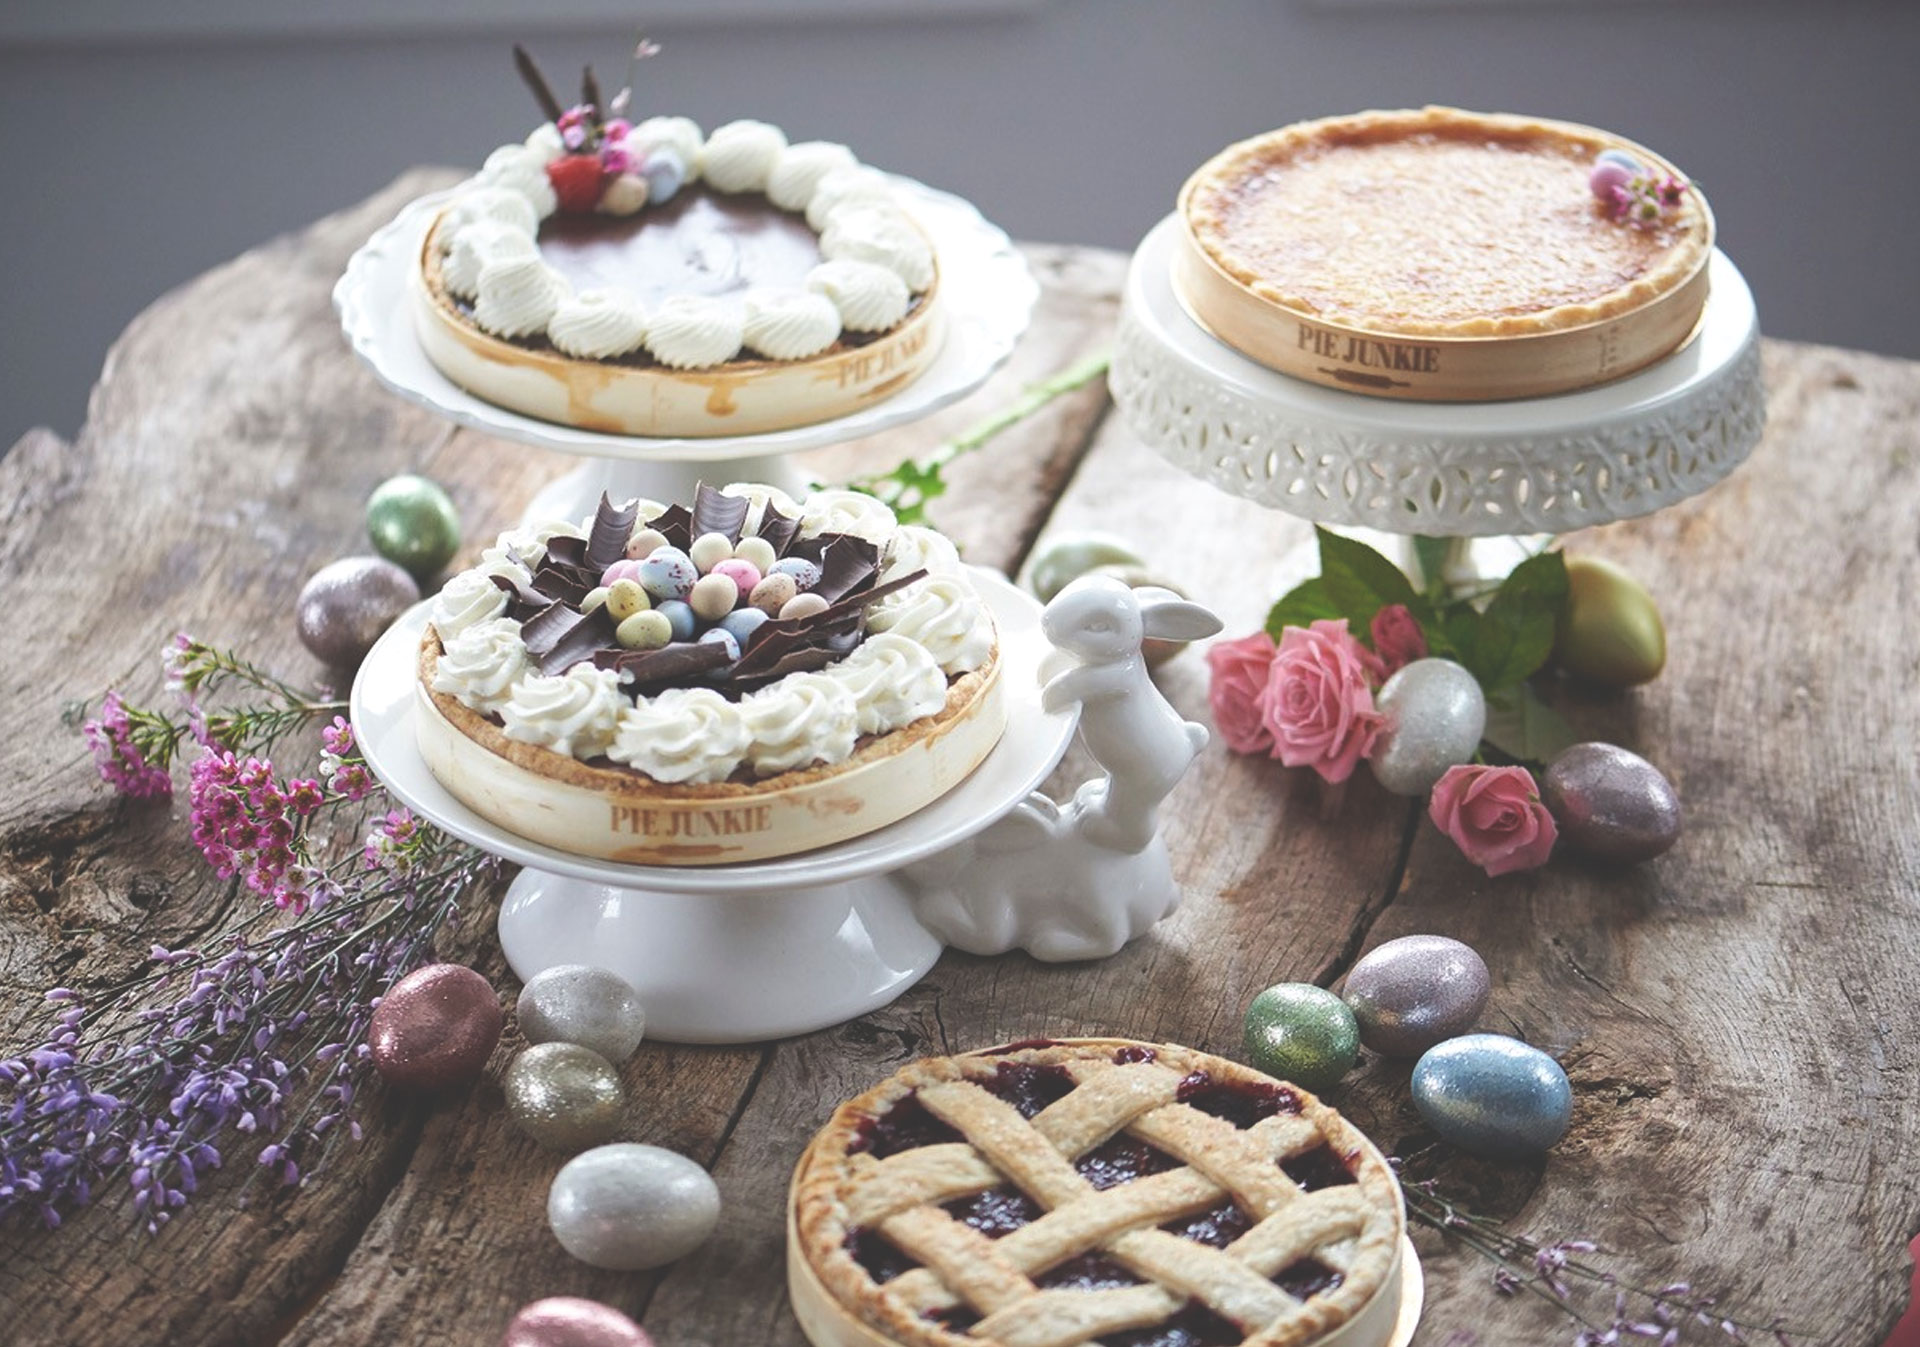 Delicious Easter treats at Pie Junkie